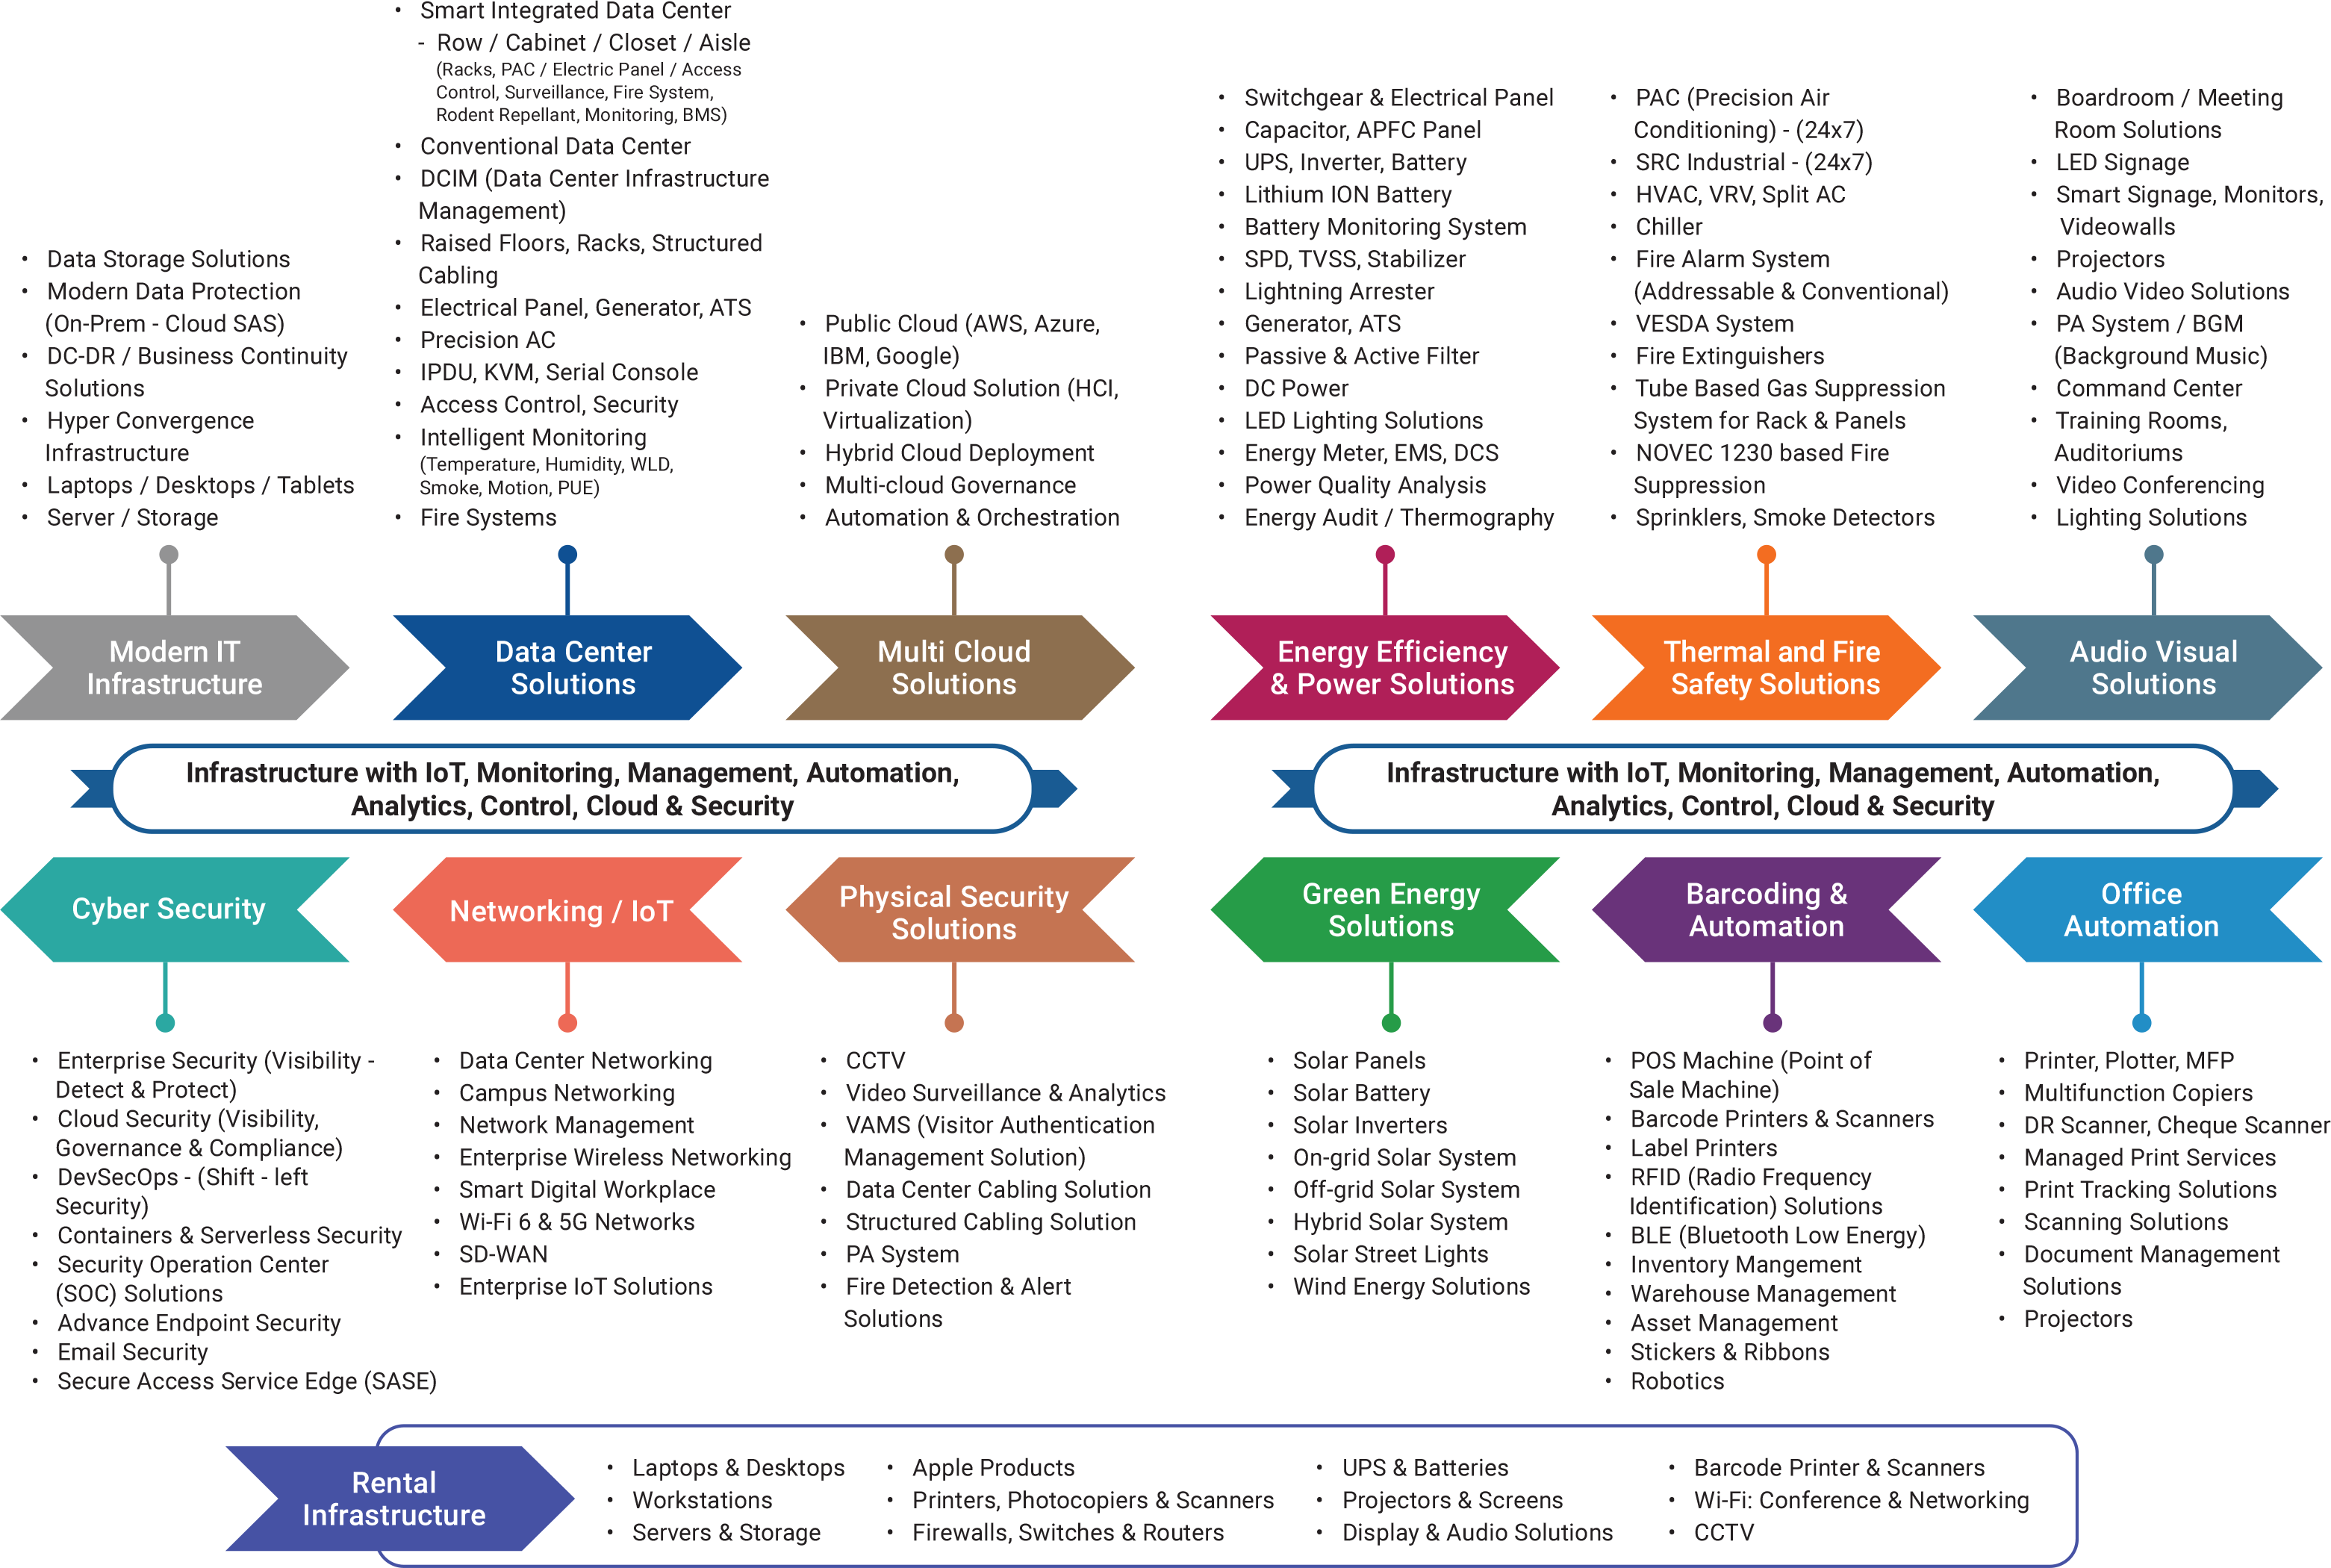 Our_Solutions_Portfolio_Mind_Map